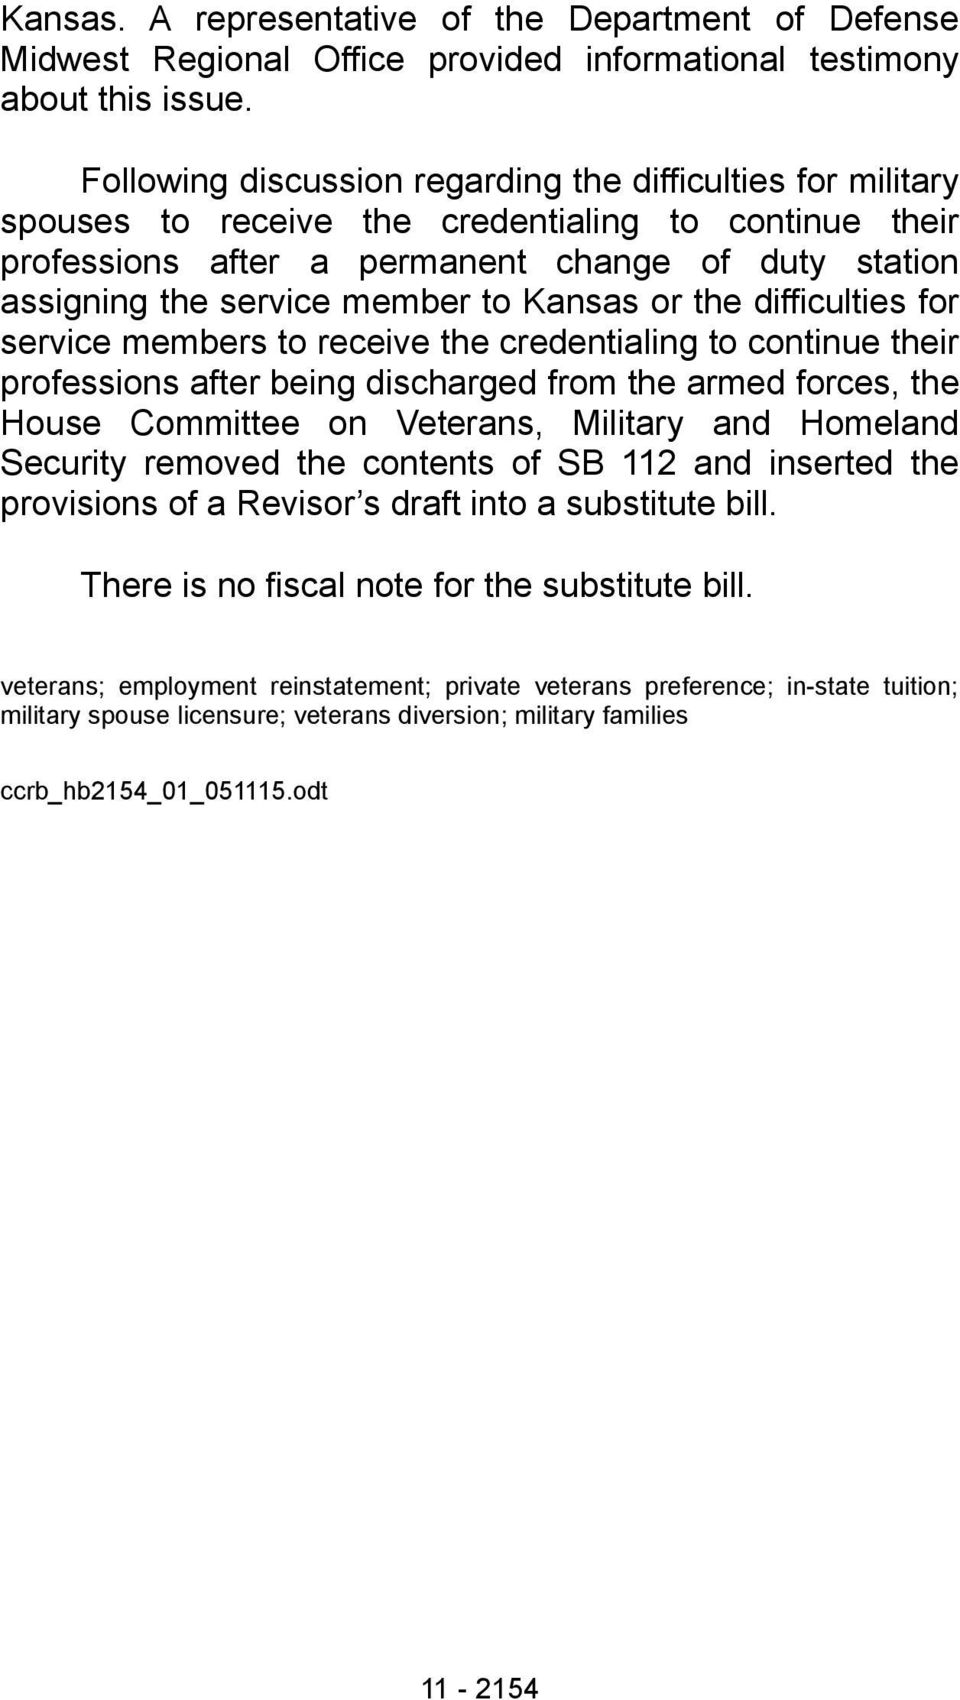 to Kansas or the difficulties for service members to receive the credentialing to continue their professions after being discharged from the armed forces, the House Committee on Veterans, Military